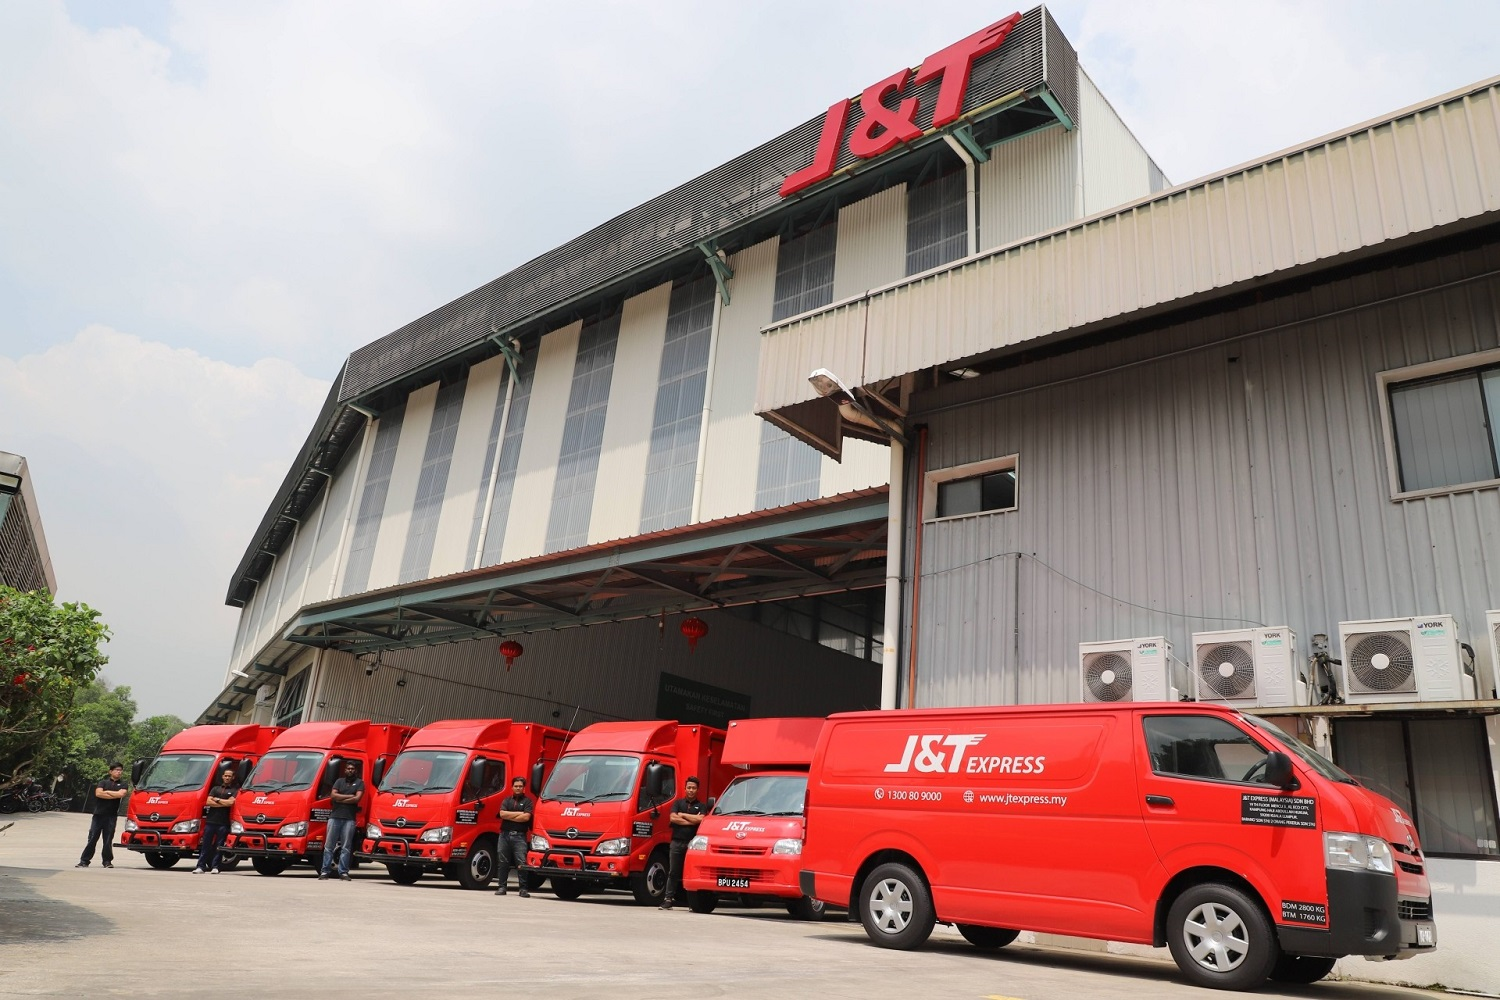 J&T Express Boosts Capabilities and Services Via HUAWEI CLOUD